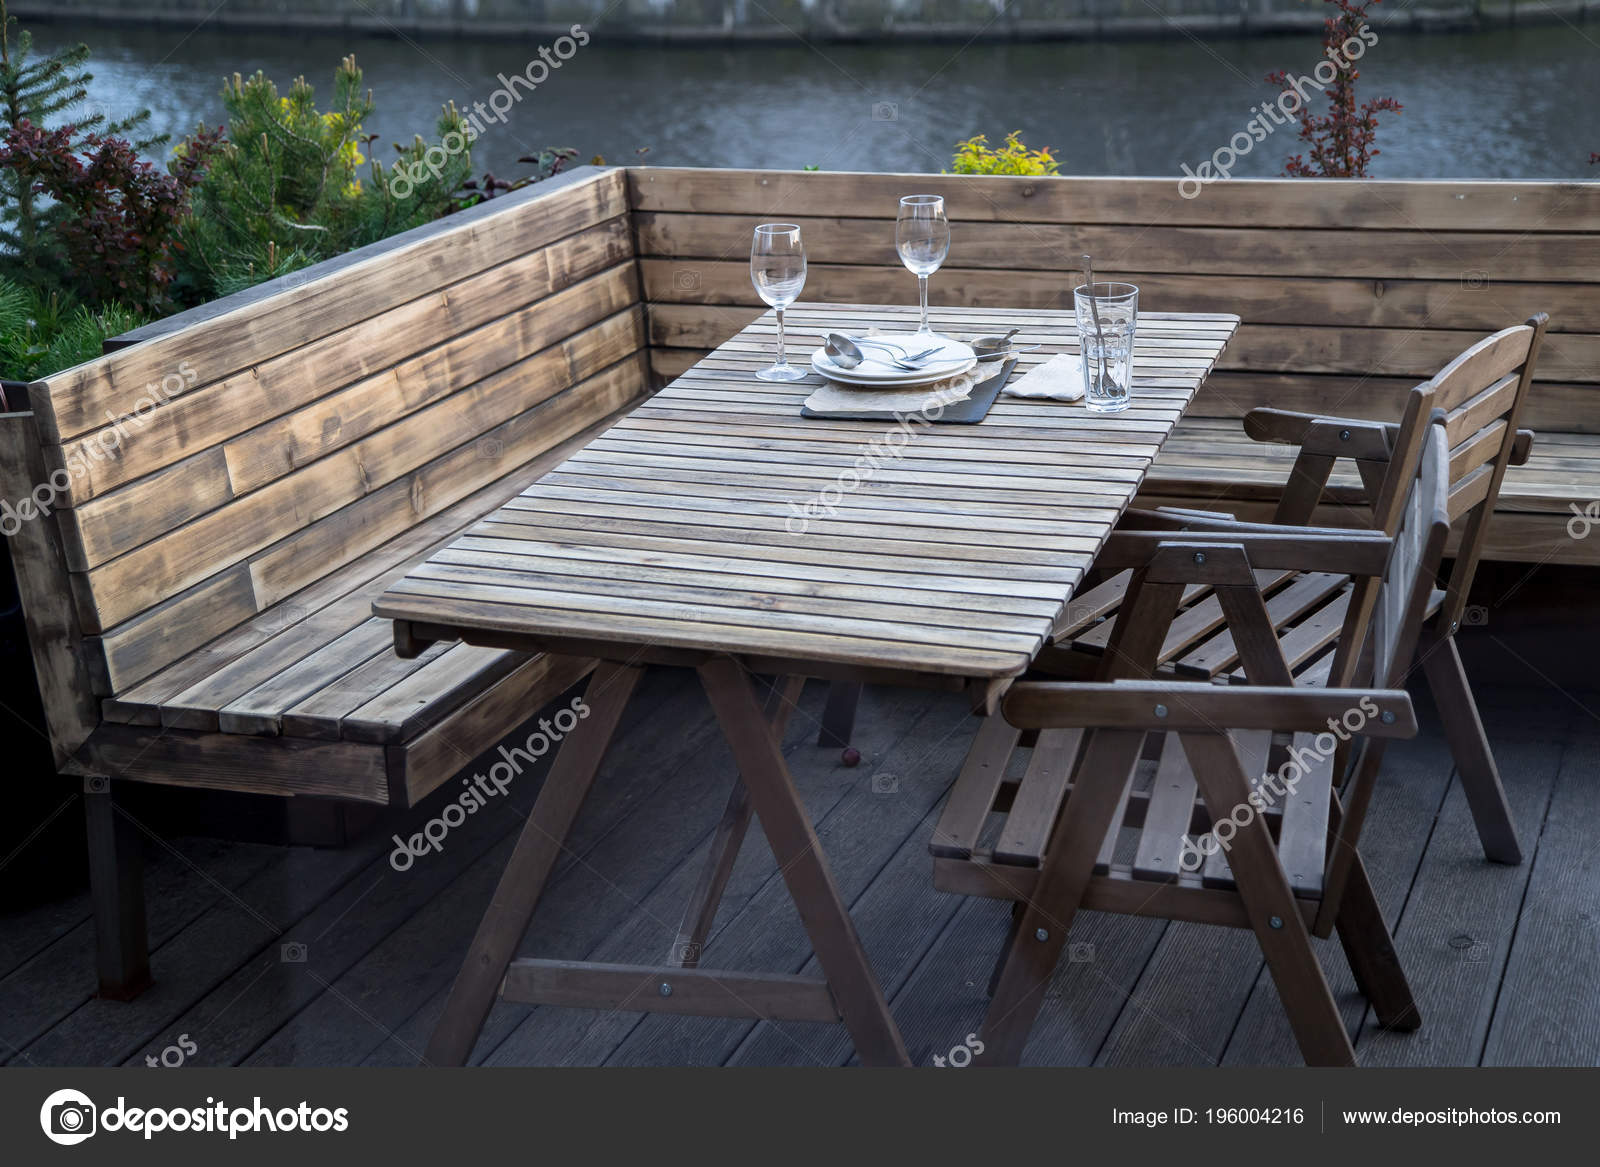 Outdoor Restaurant Terrace Made Wood Scandinavian Style Stock Photo C Asinskki 196004216